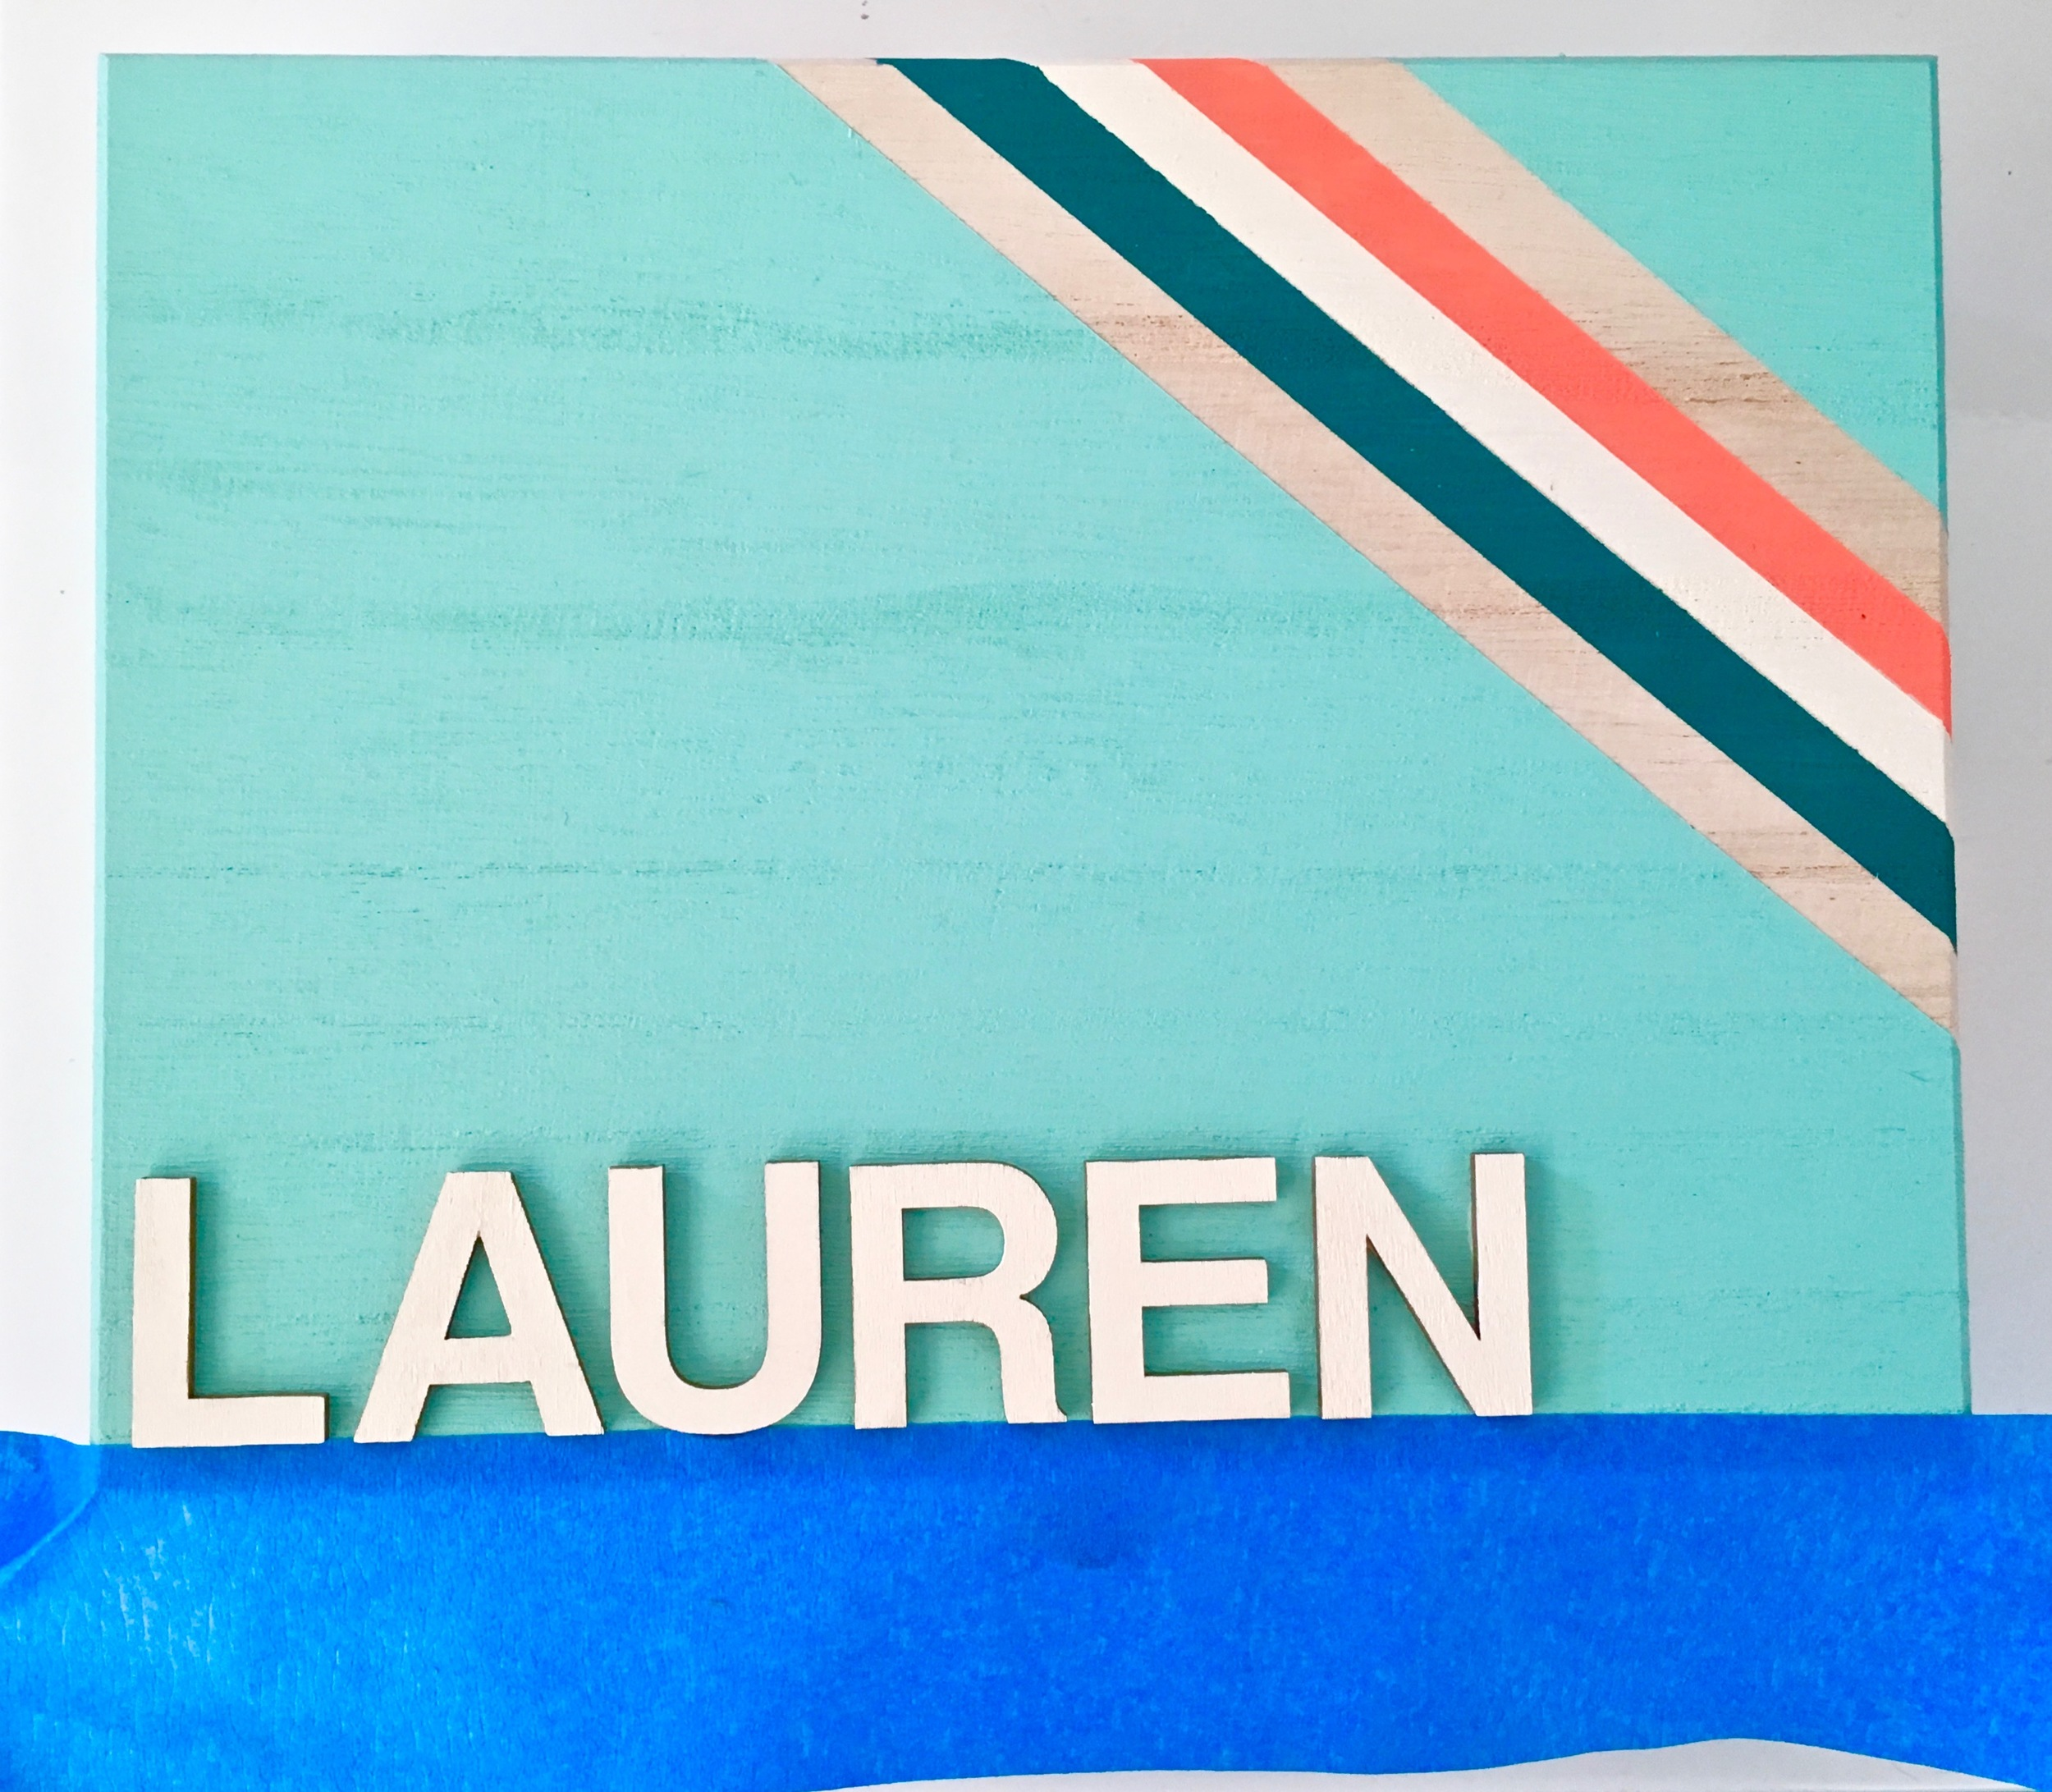 lauren-name-box.jpg